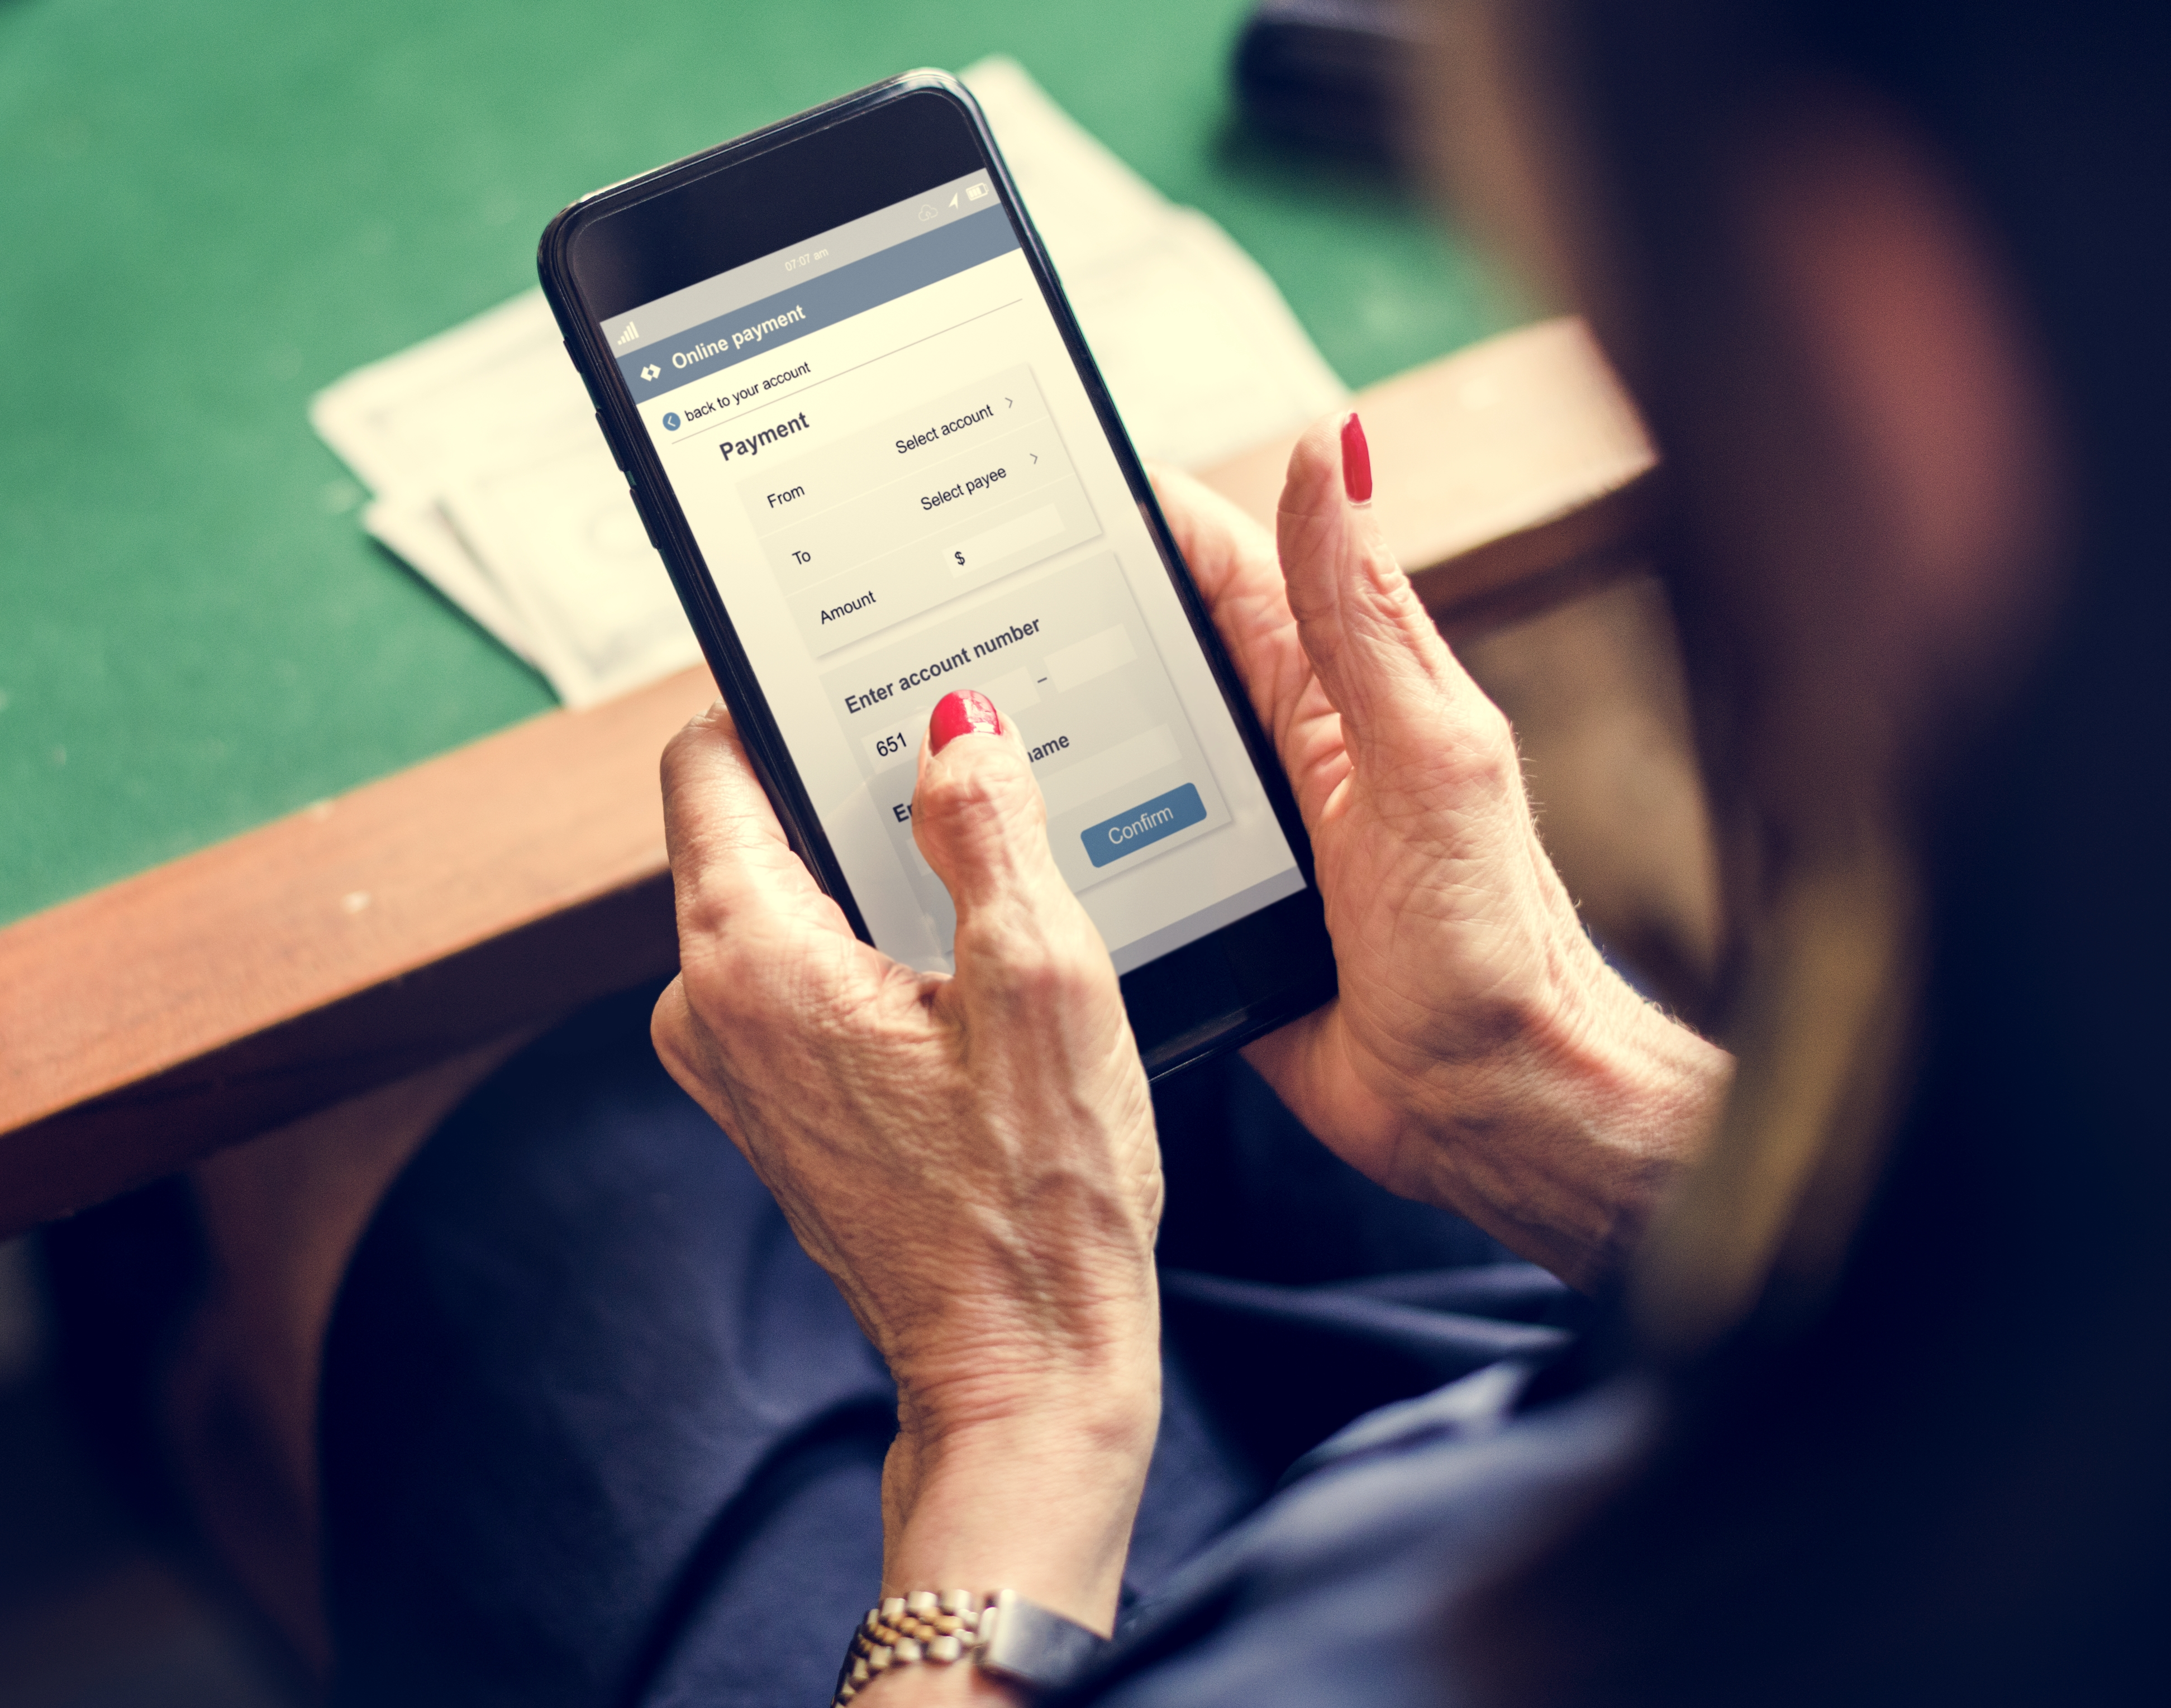 Hands holding smartphone paying online